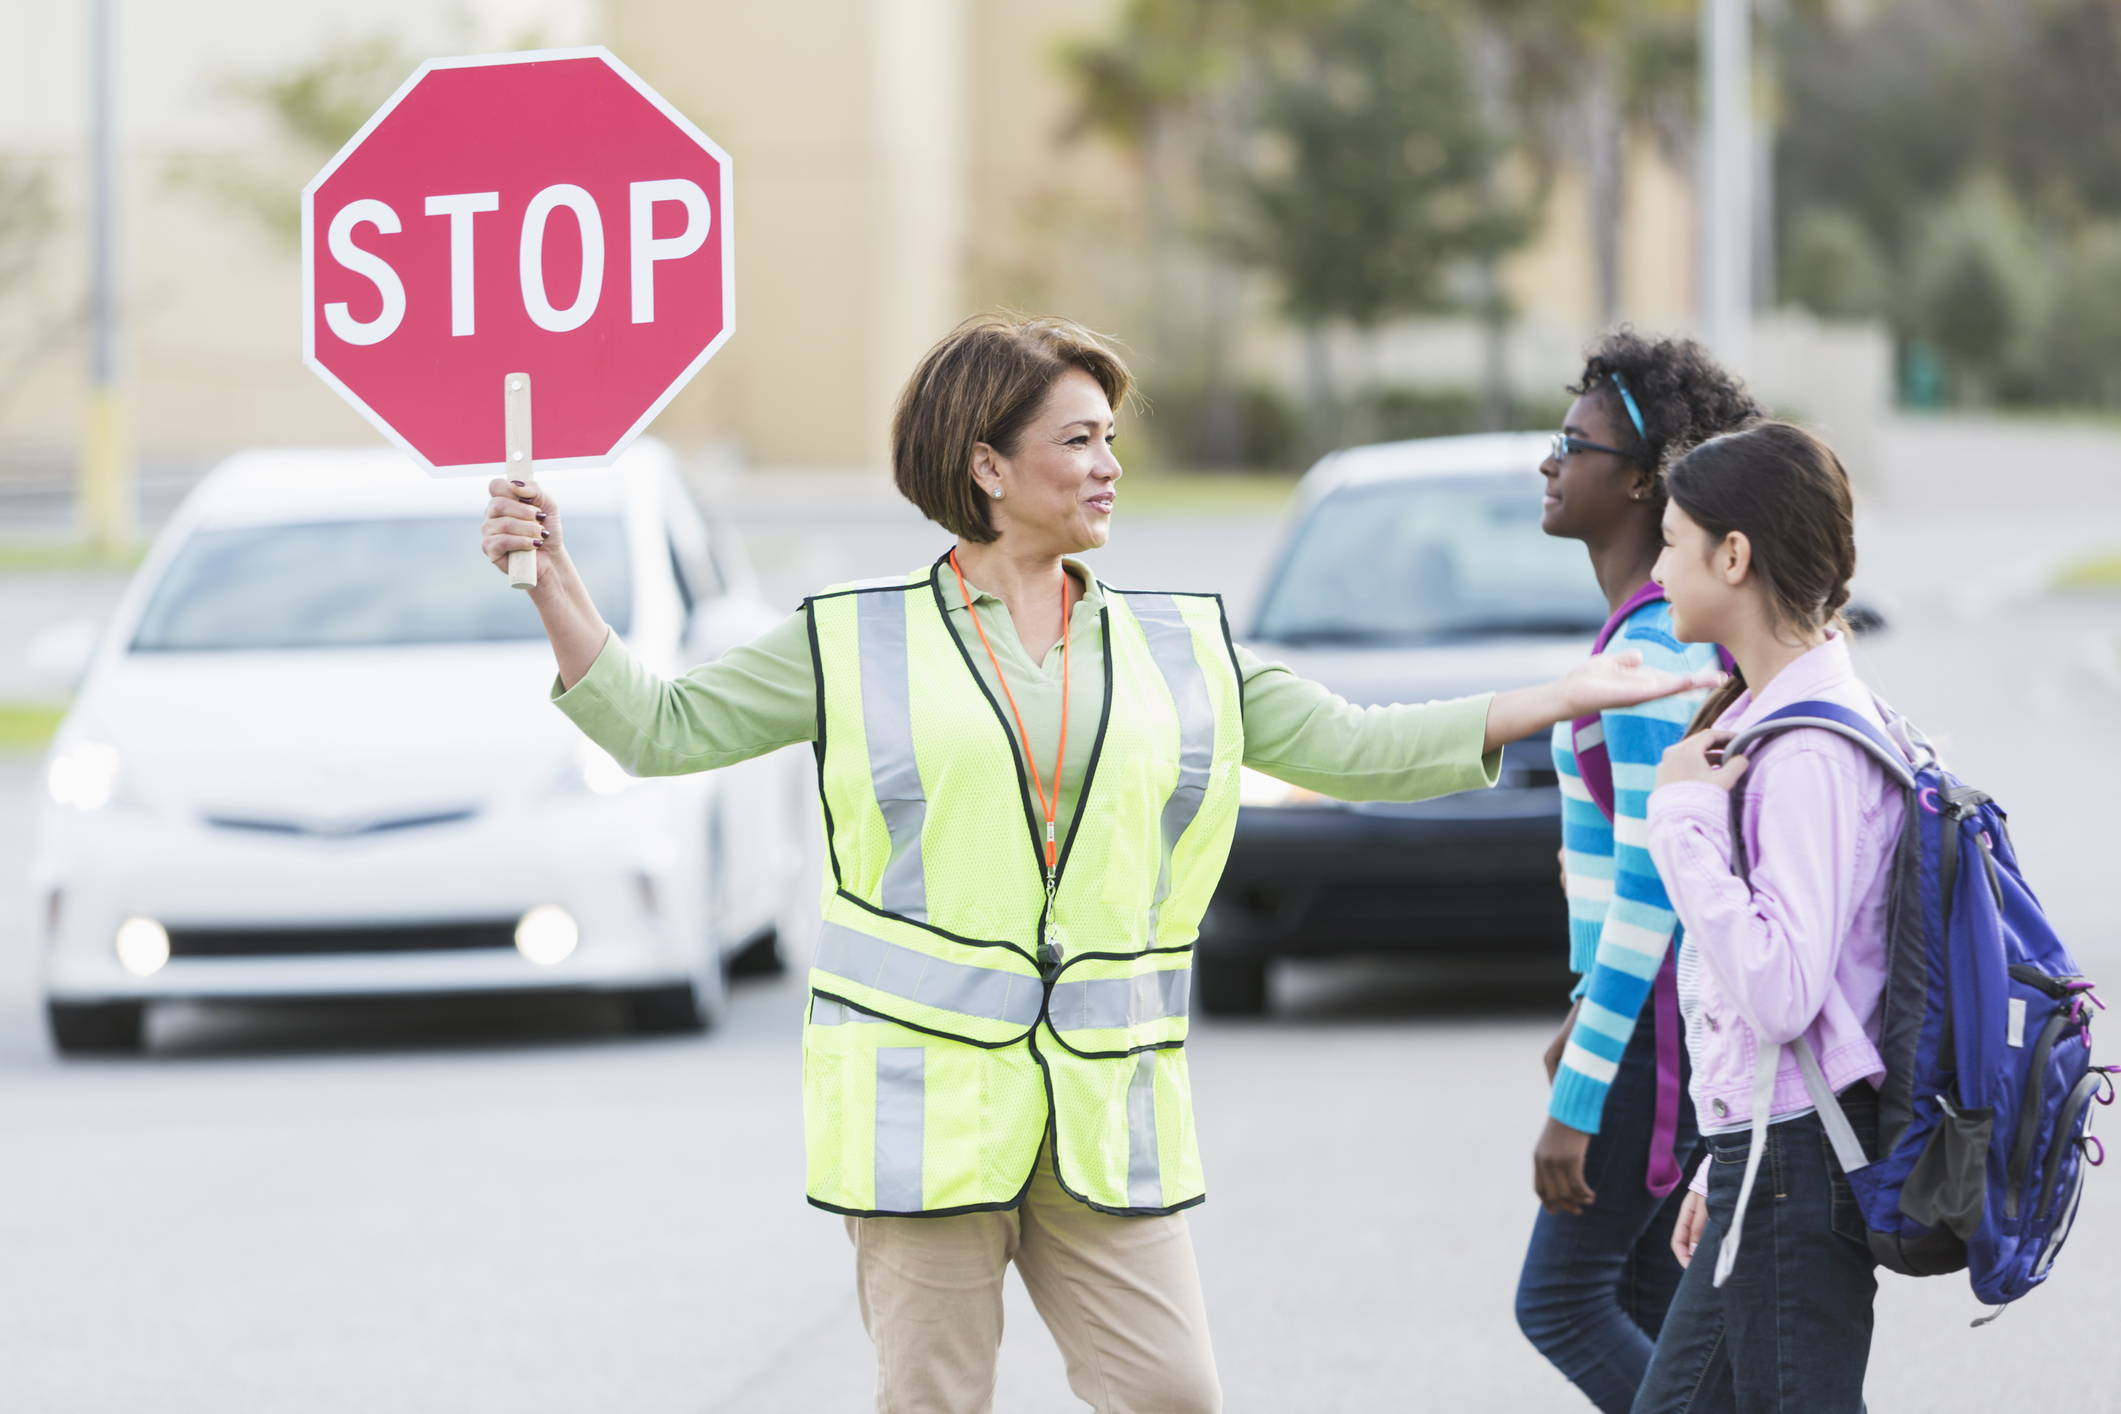 School crossing guard and students using crosswalk